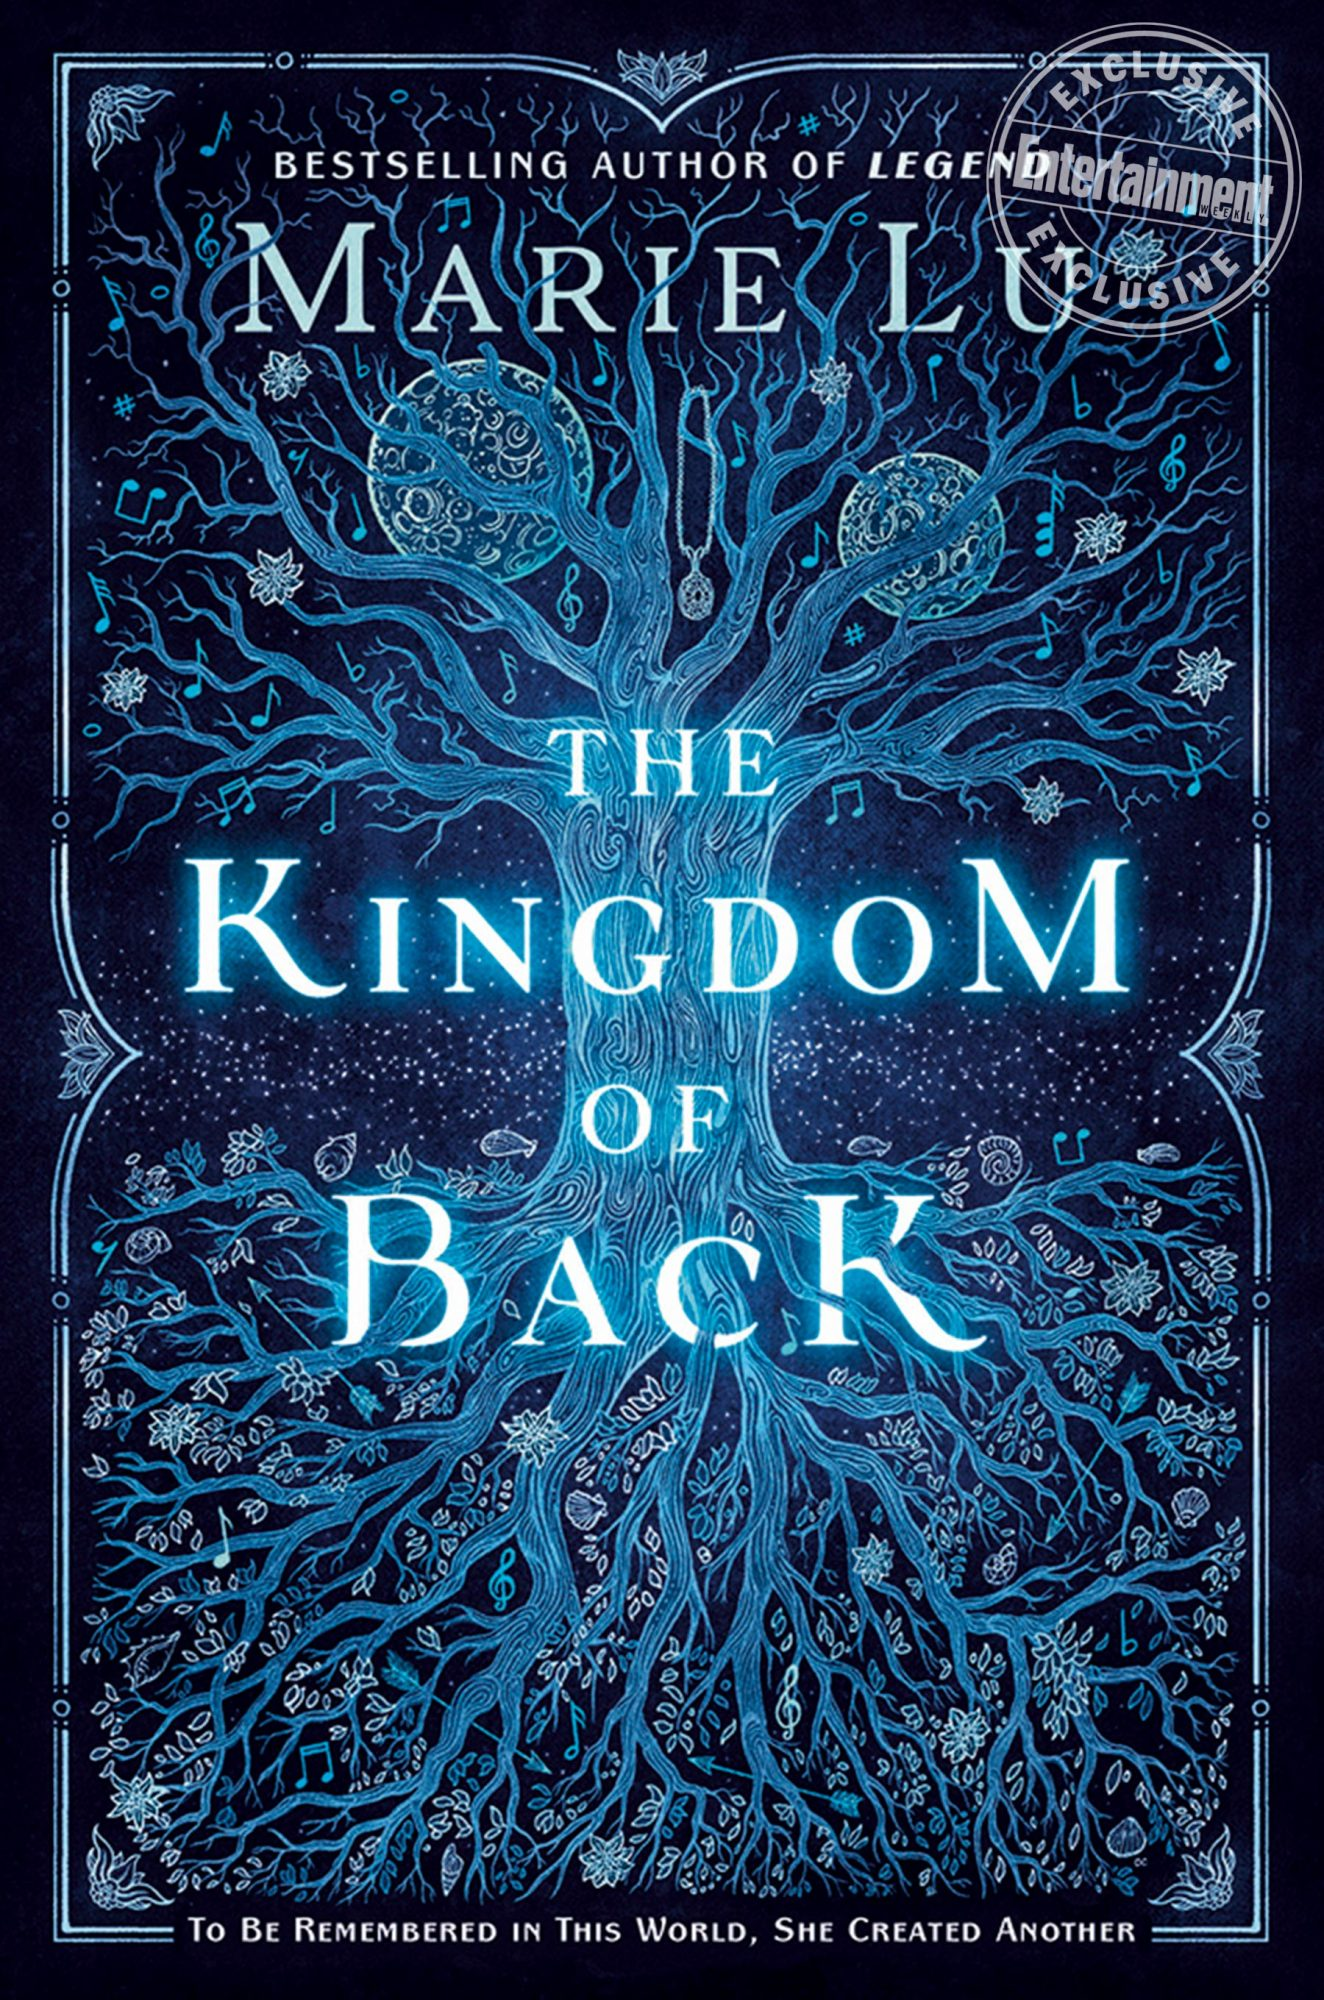 The Kingdom of Back by Marie Lu CR: Penguin Young Readers